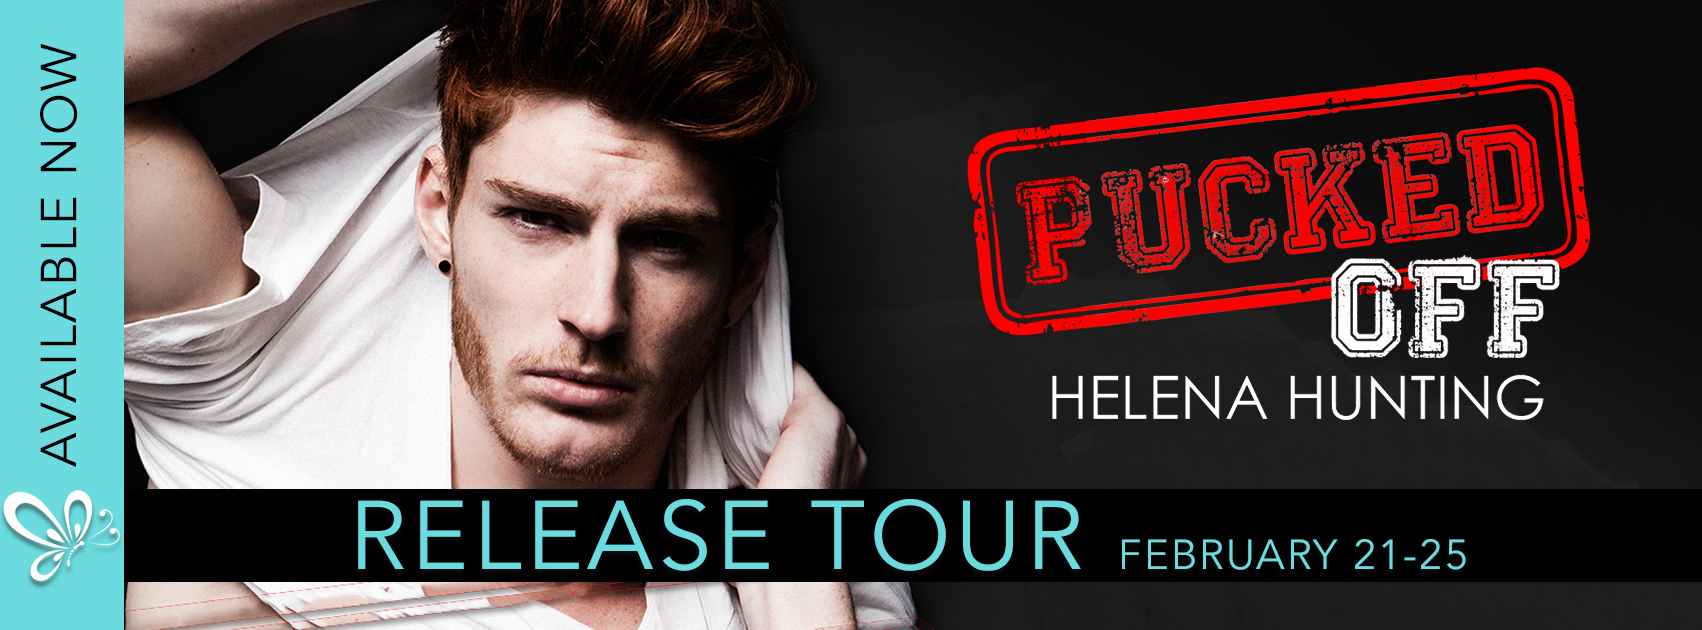 Pucked Off by Helena Hunting Blog Tour #Review